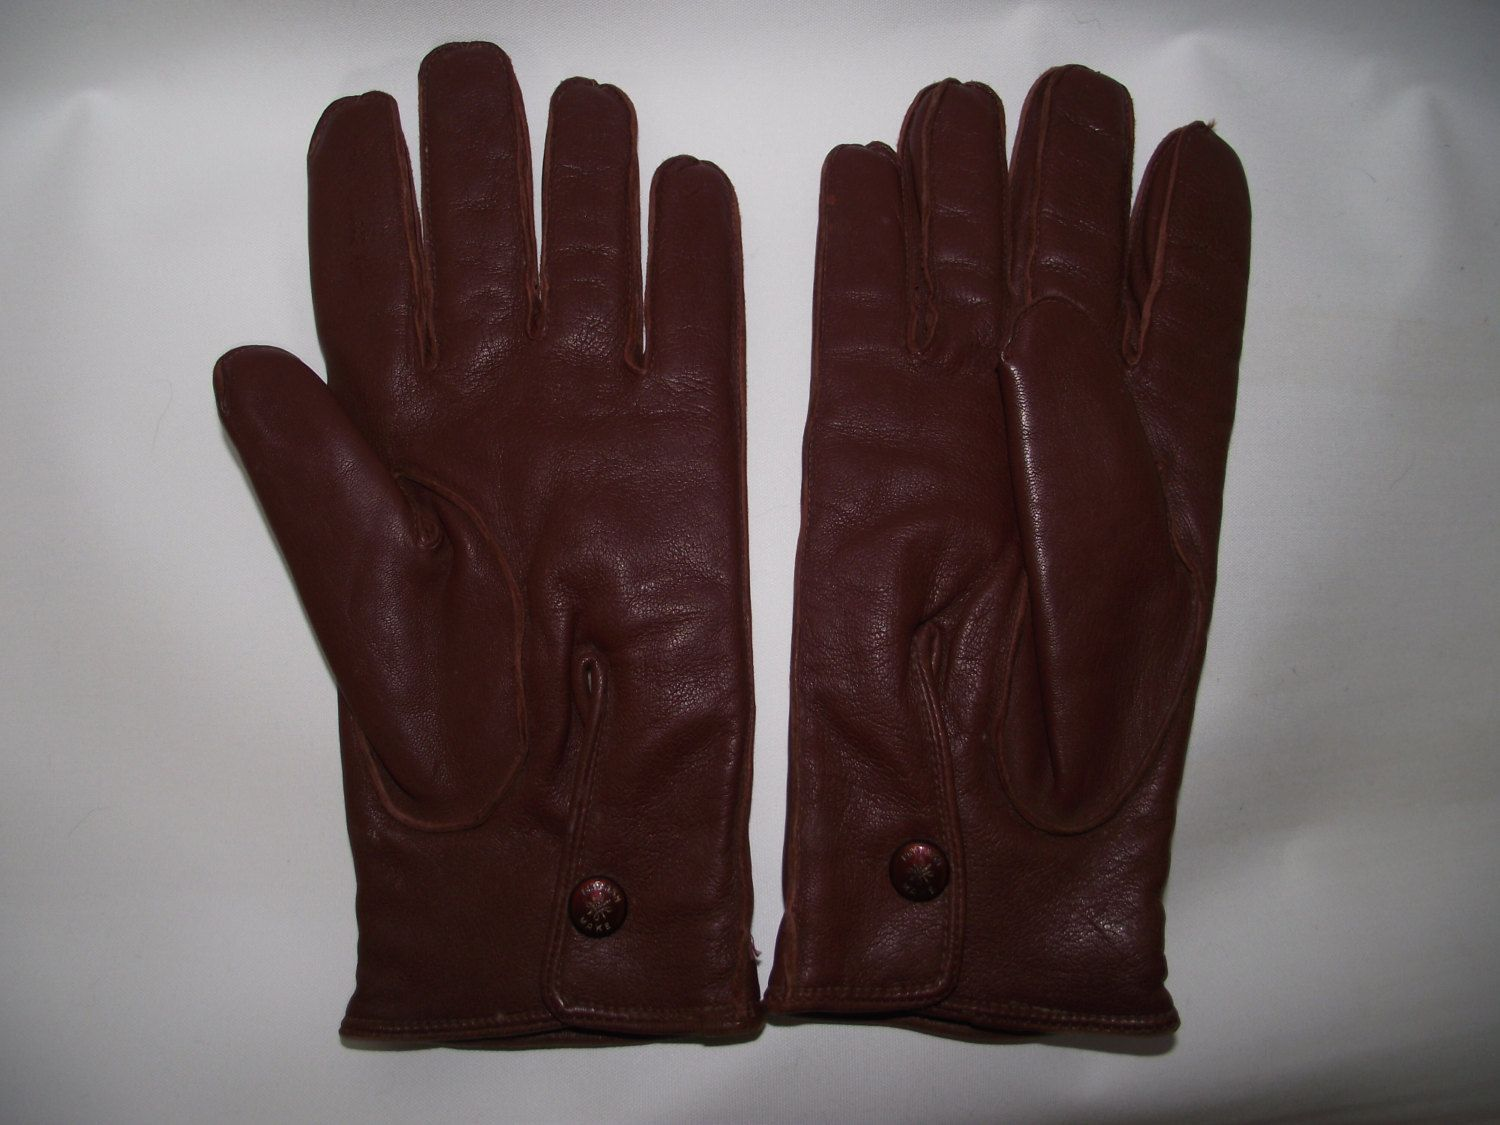 Driving gloves debenhams - Vintage Driving Gloves English Made Mens Super Soft Tan Leather Fleece Lined Driving Gloves